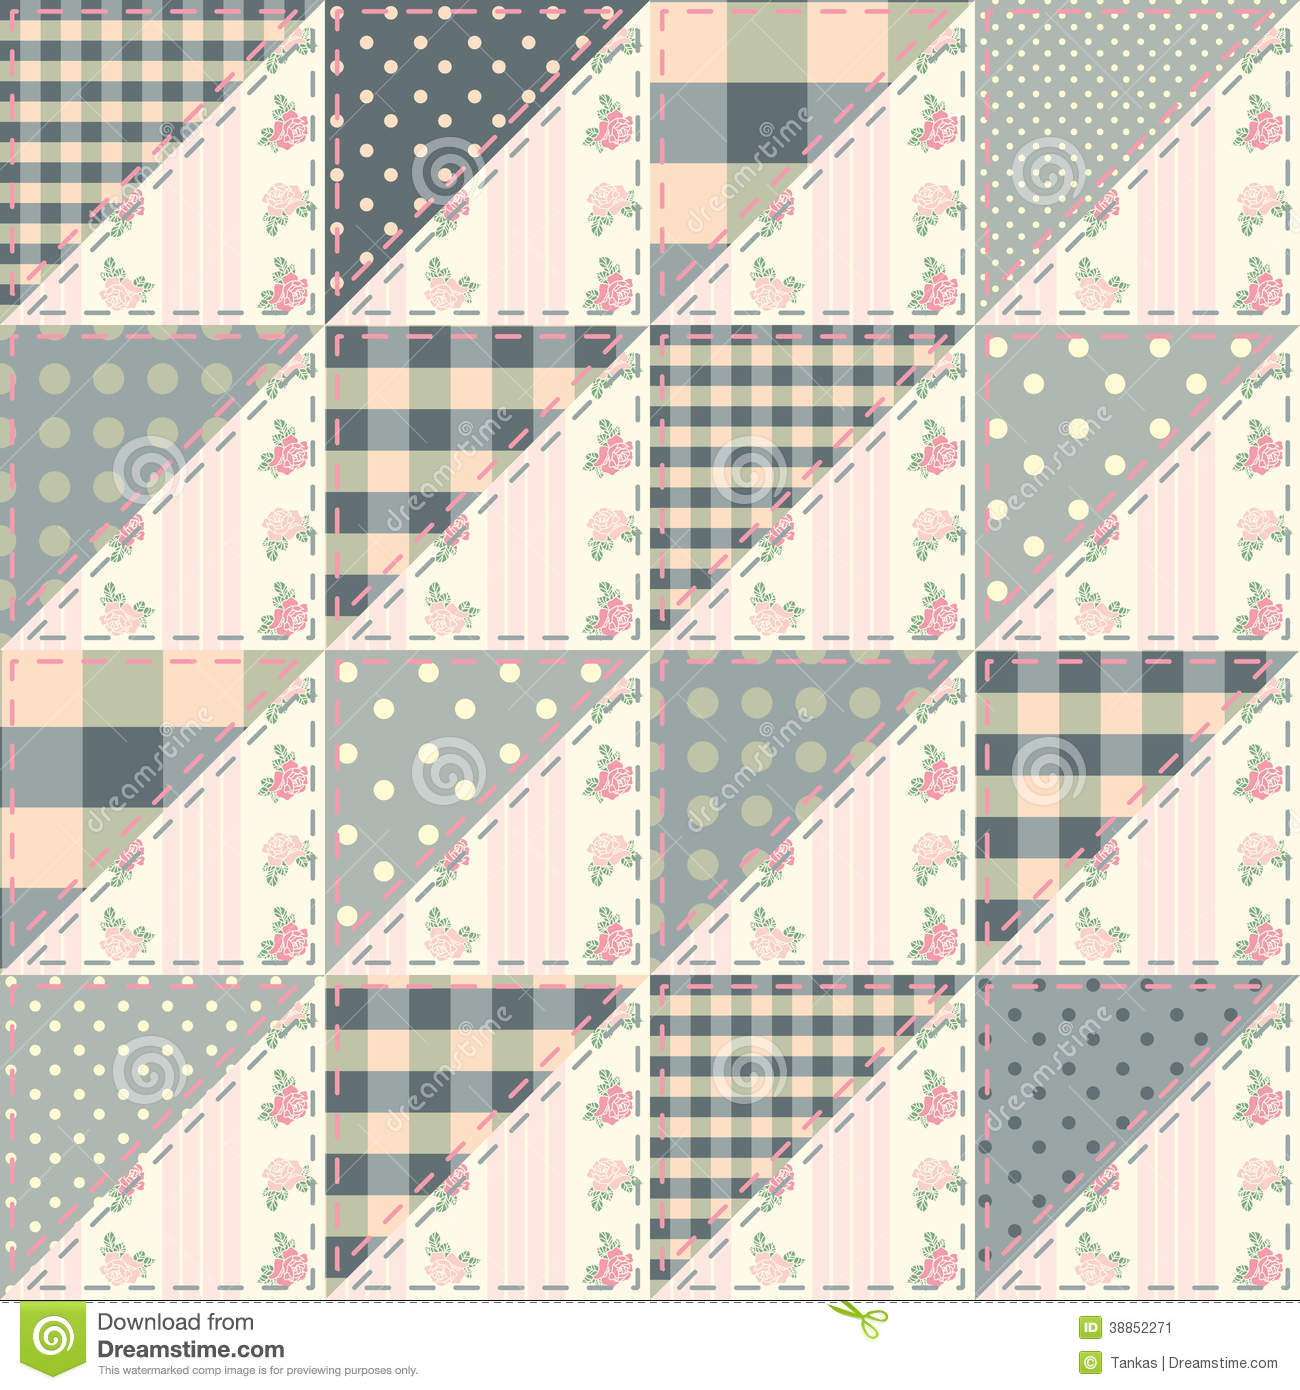 chic project sunnysidedesign and patterns by pattern you quilts quilting your next for looking quilt pin free shabby